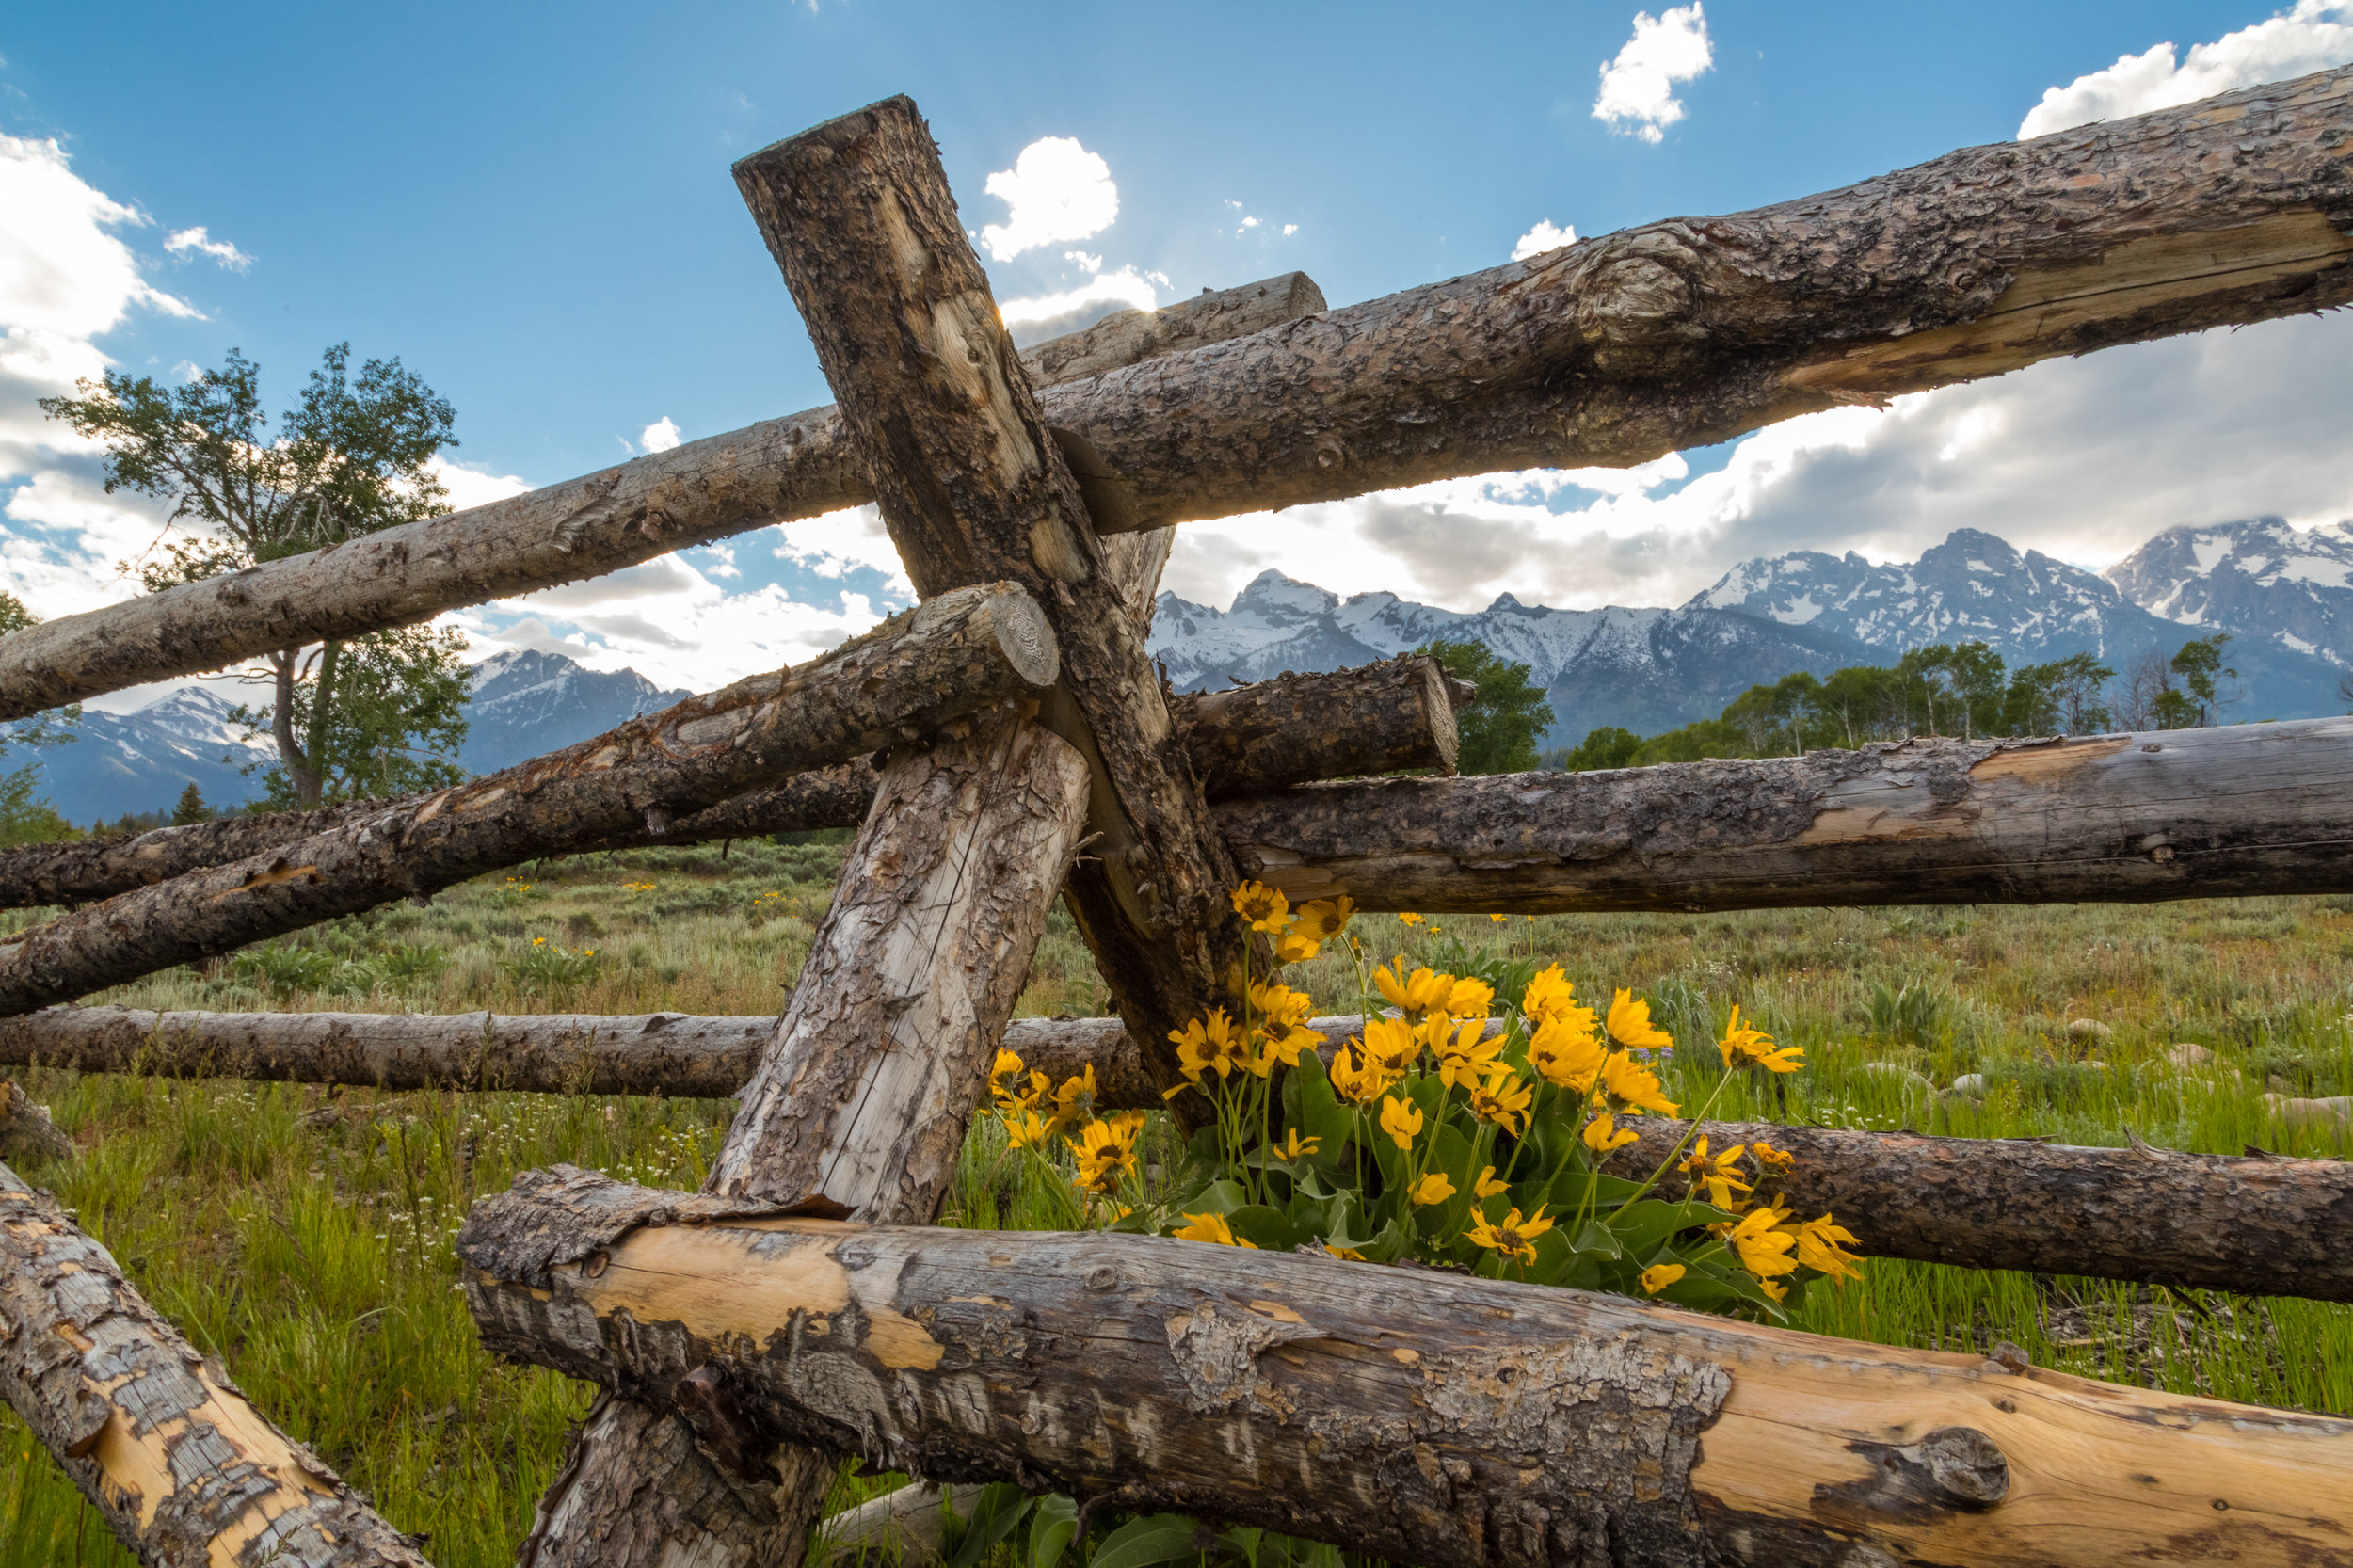 Grand Teton National Park, Image # 1689